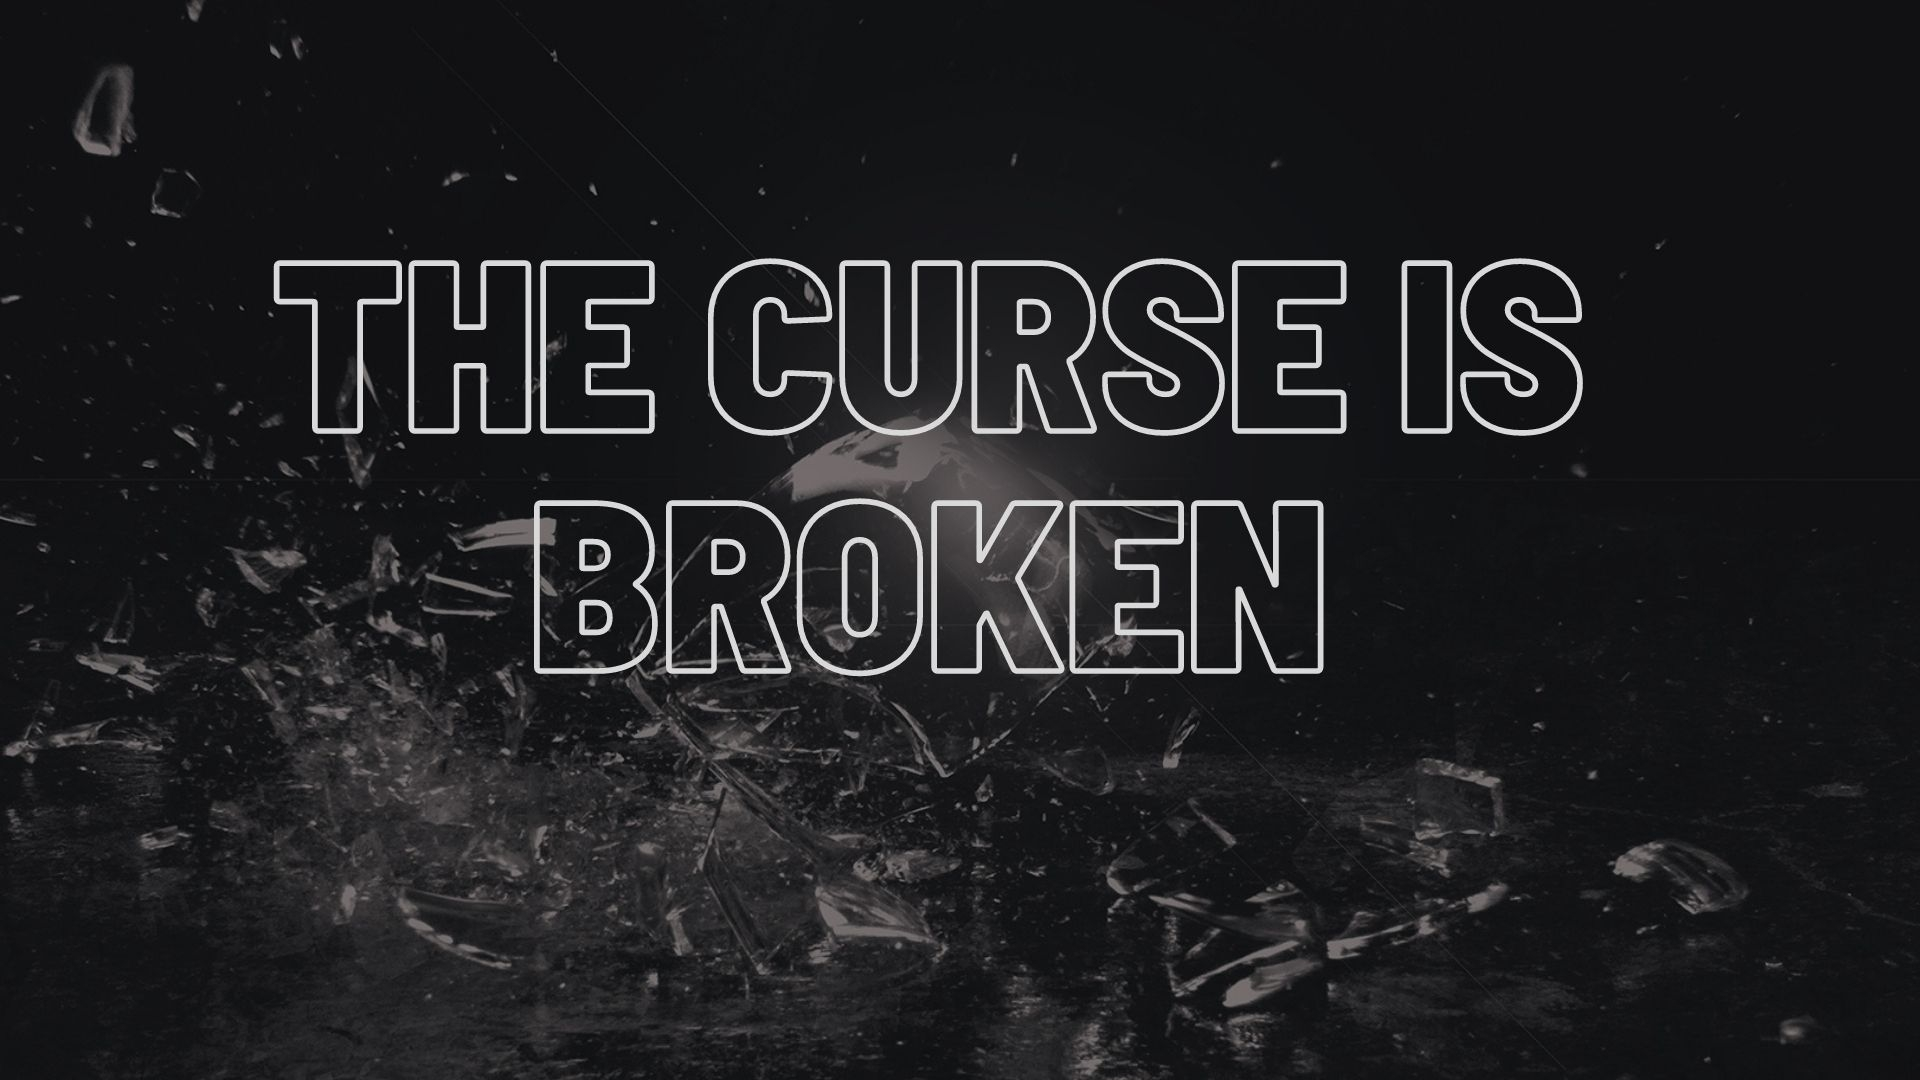 Sunday January 17, 2021 The Curse Is Broken - HF Campus Pastor Elijah Kiser